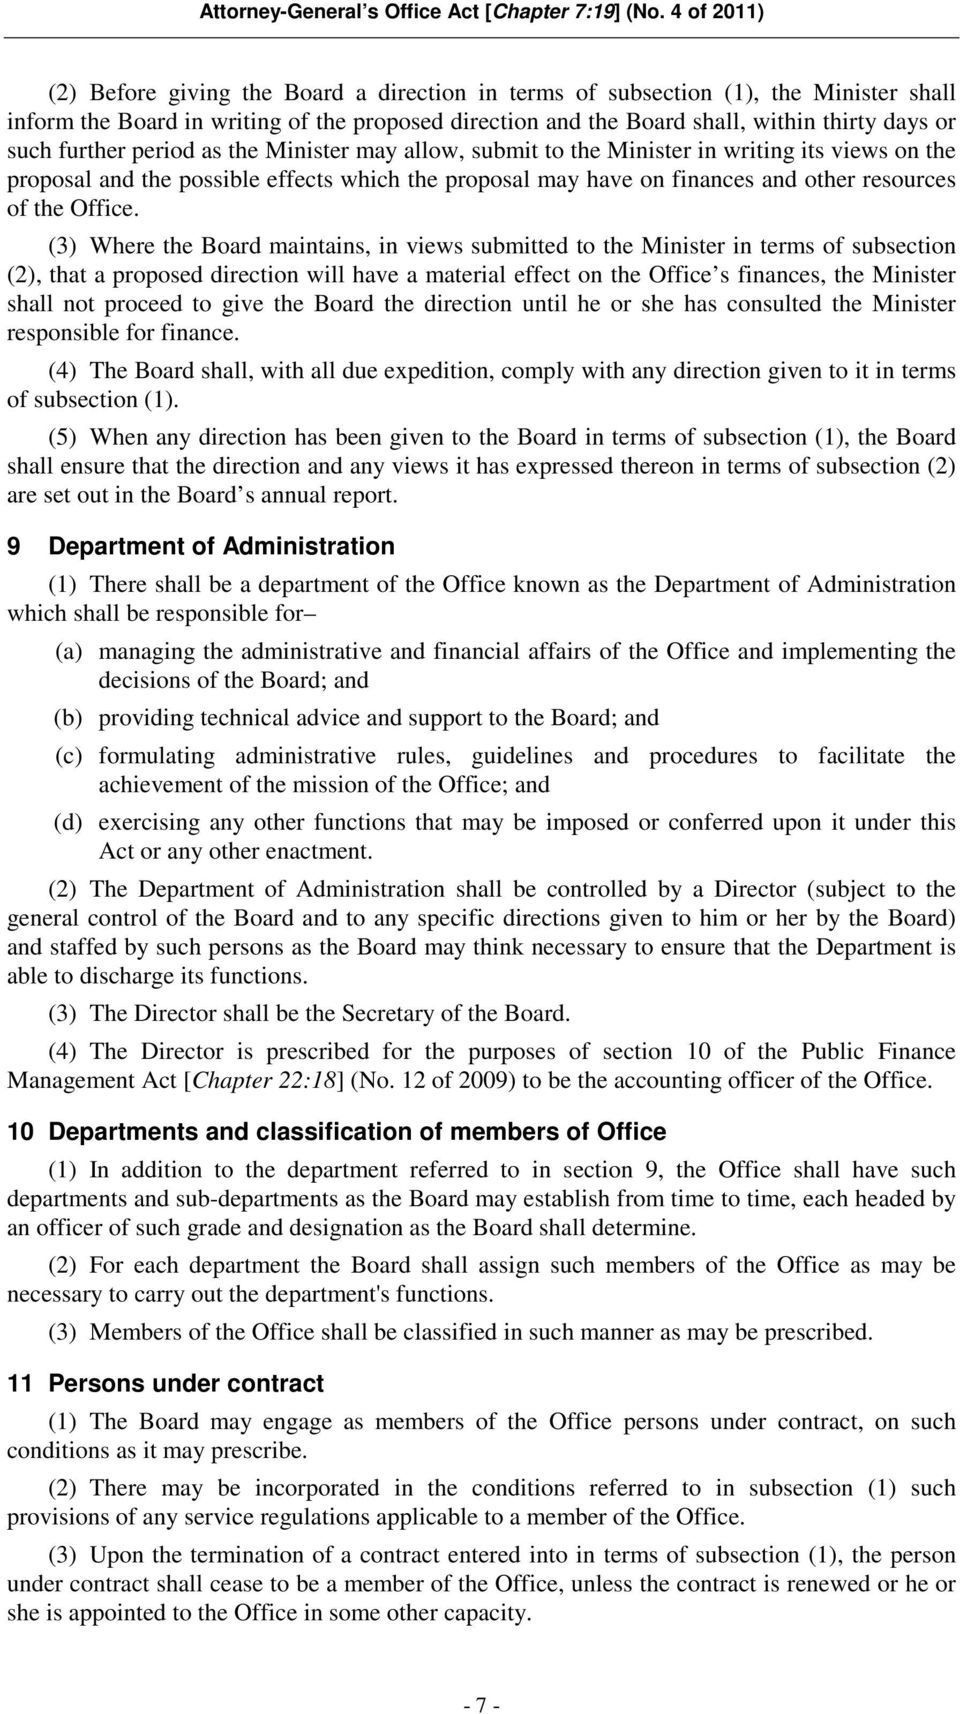 (3) Where the Board maintains, in views submitted to the Minister in terms of subsection (2), that a proposed direction will have a material effect on the Office s finances, the Minister shall not